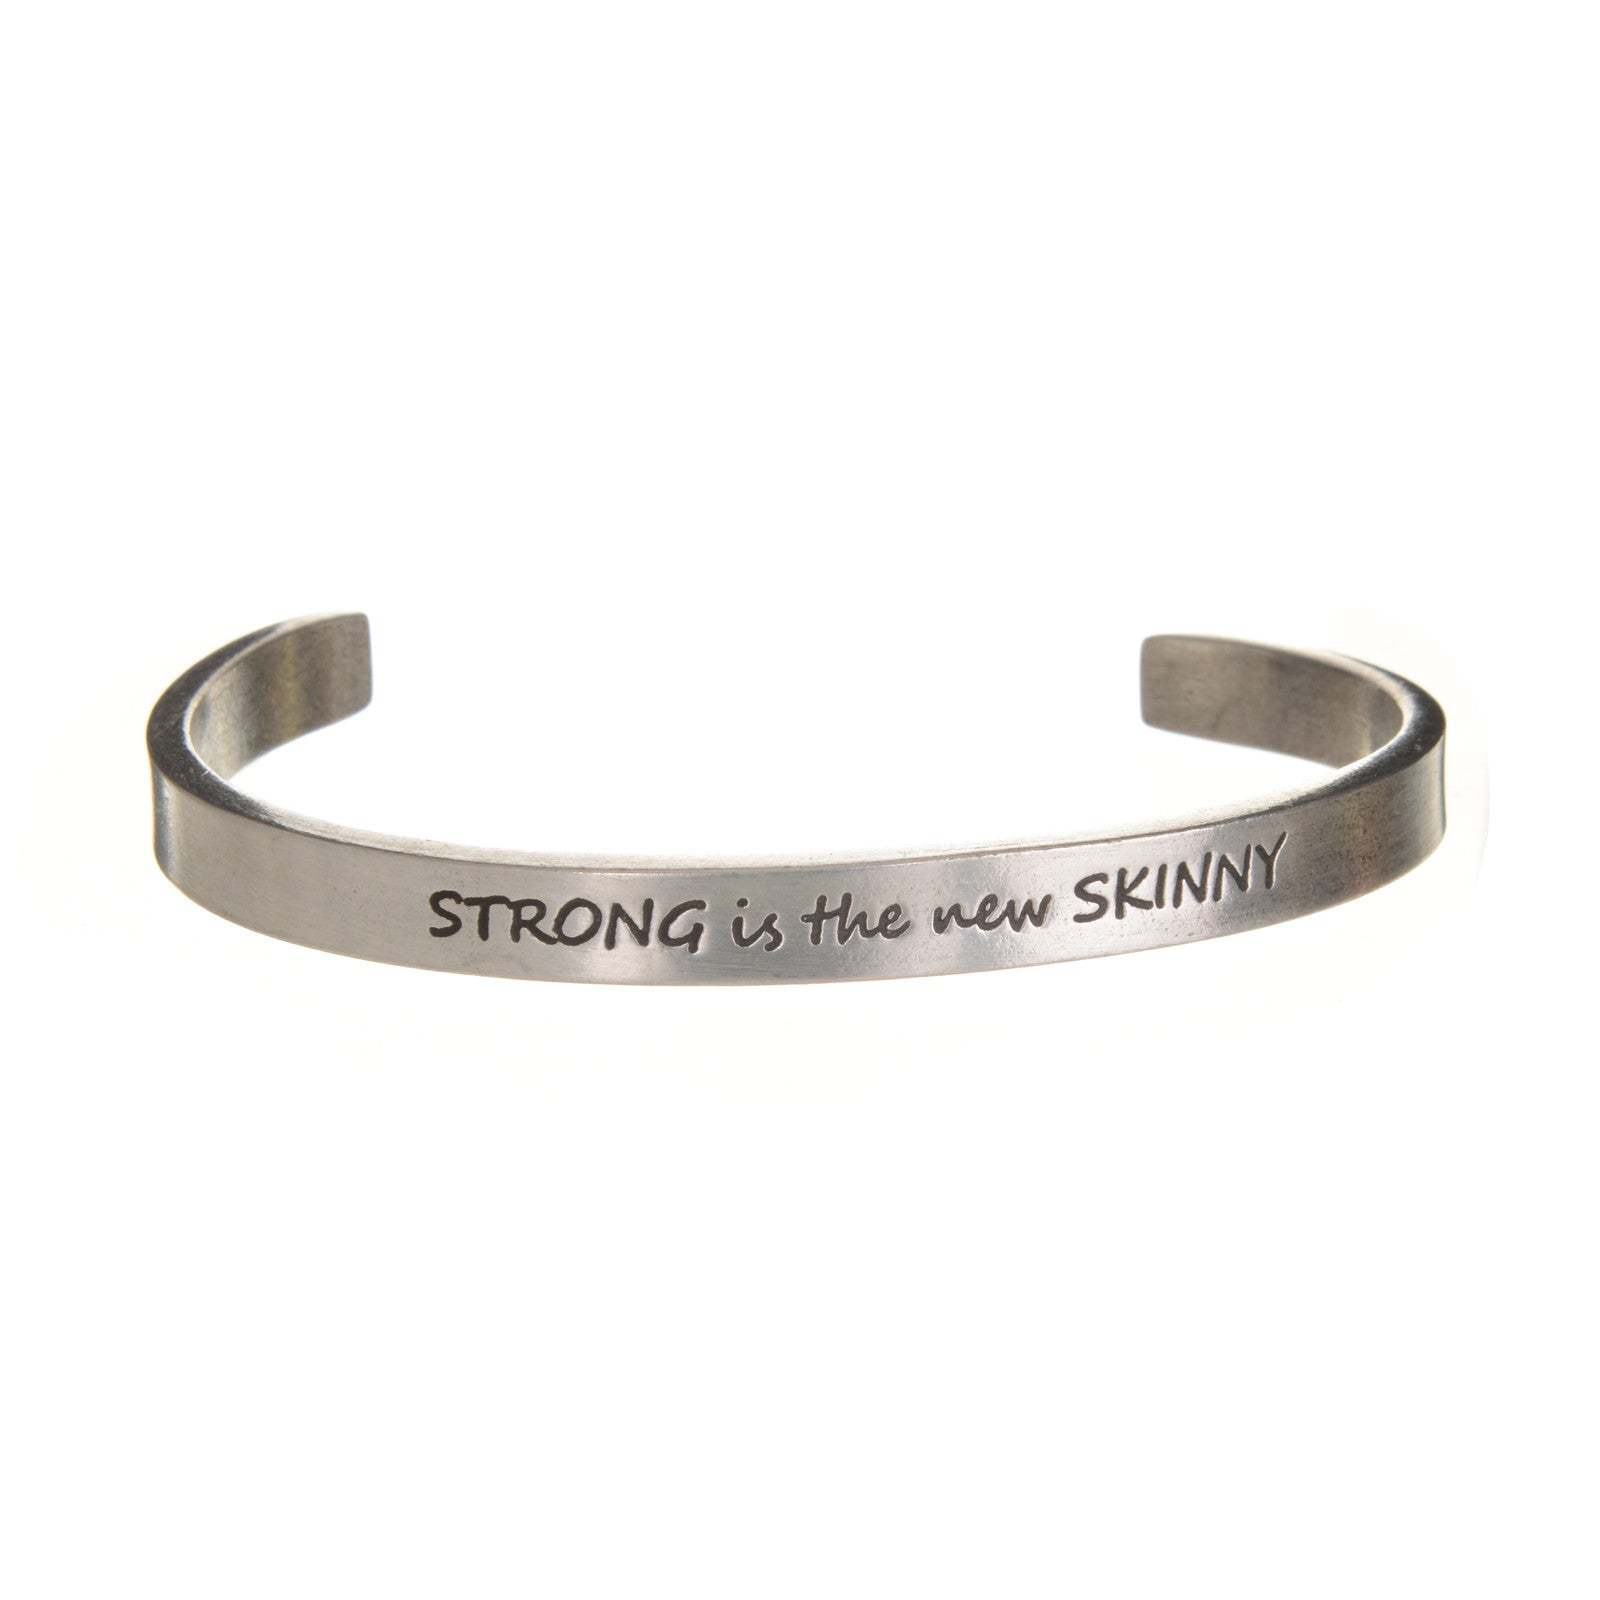 Strong Is The New Skinny. Quotable Cuff - Whitney Howard Designs